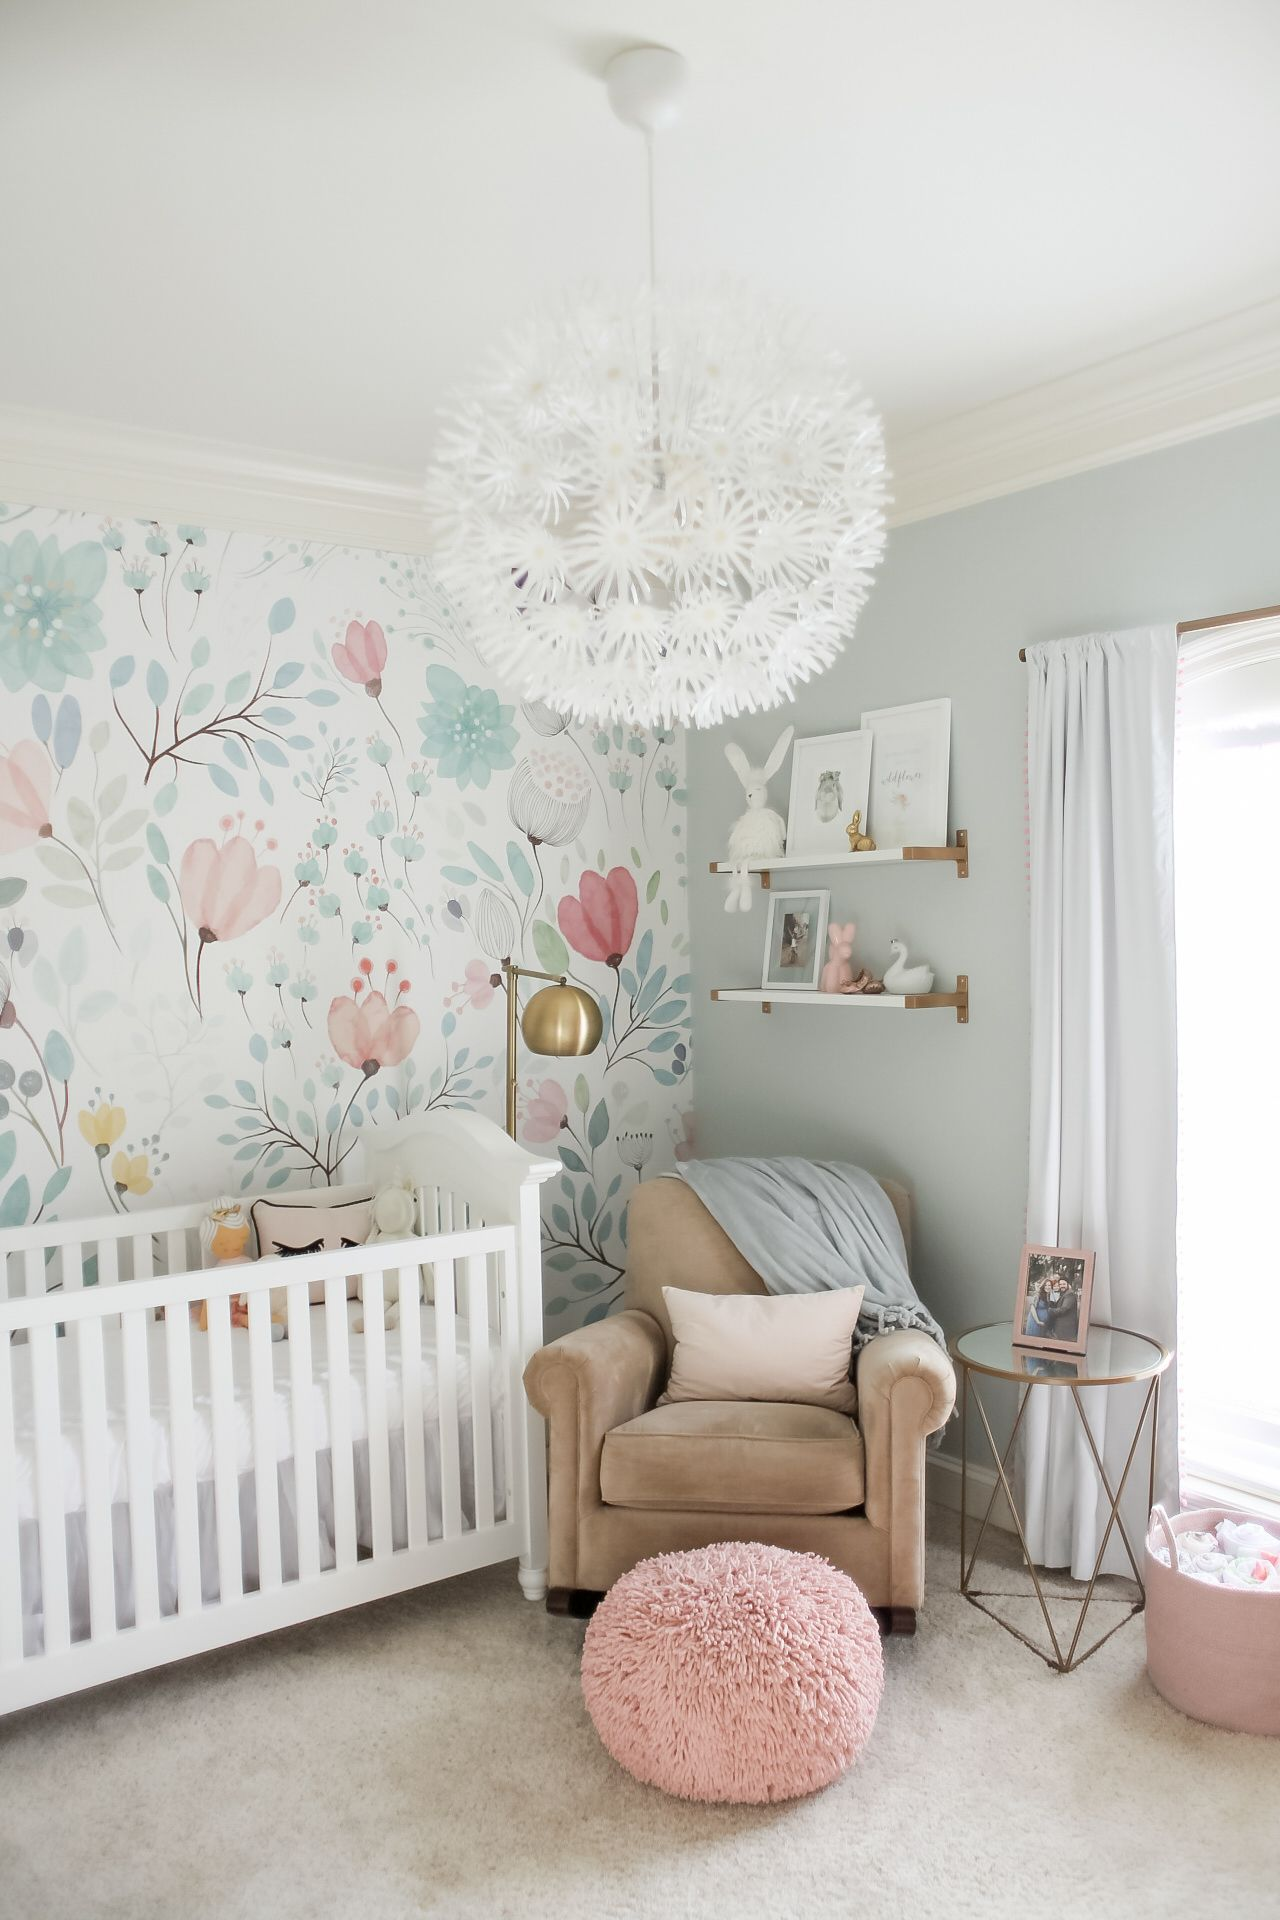 Bright and Whimsical Nursery for Colette - Project Nursery  Girl